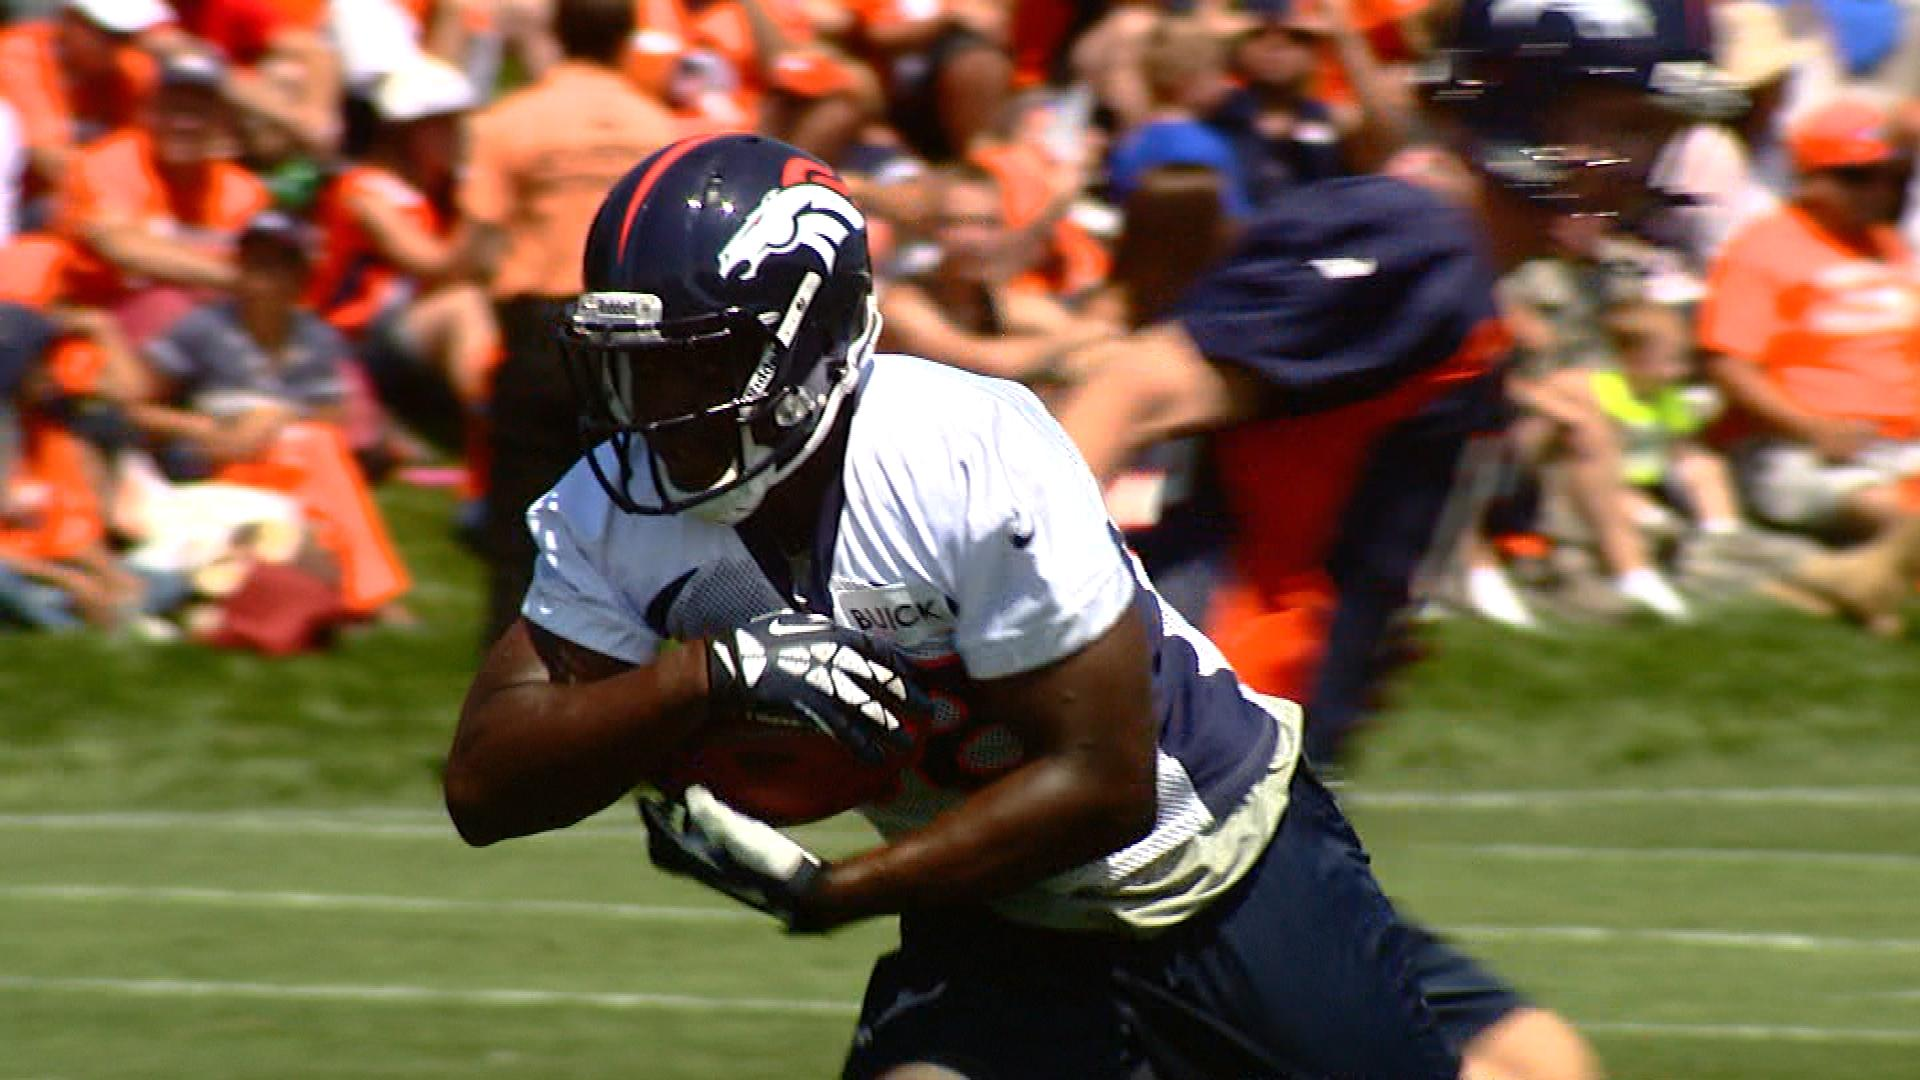 Montee Ball at training camp (credit: CBS)